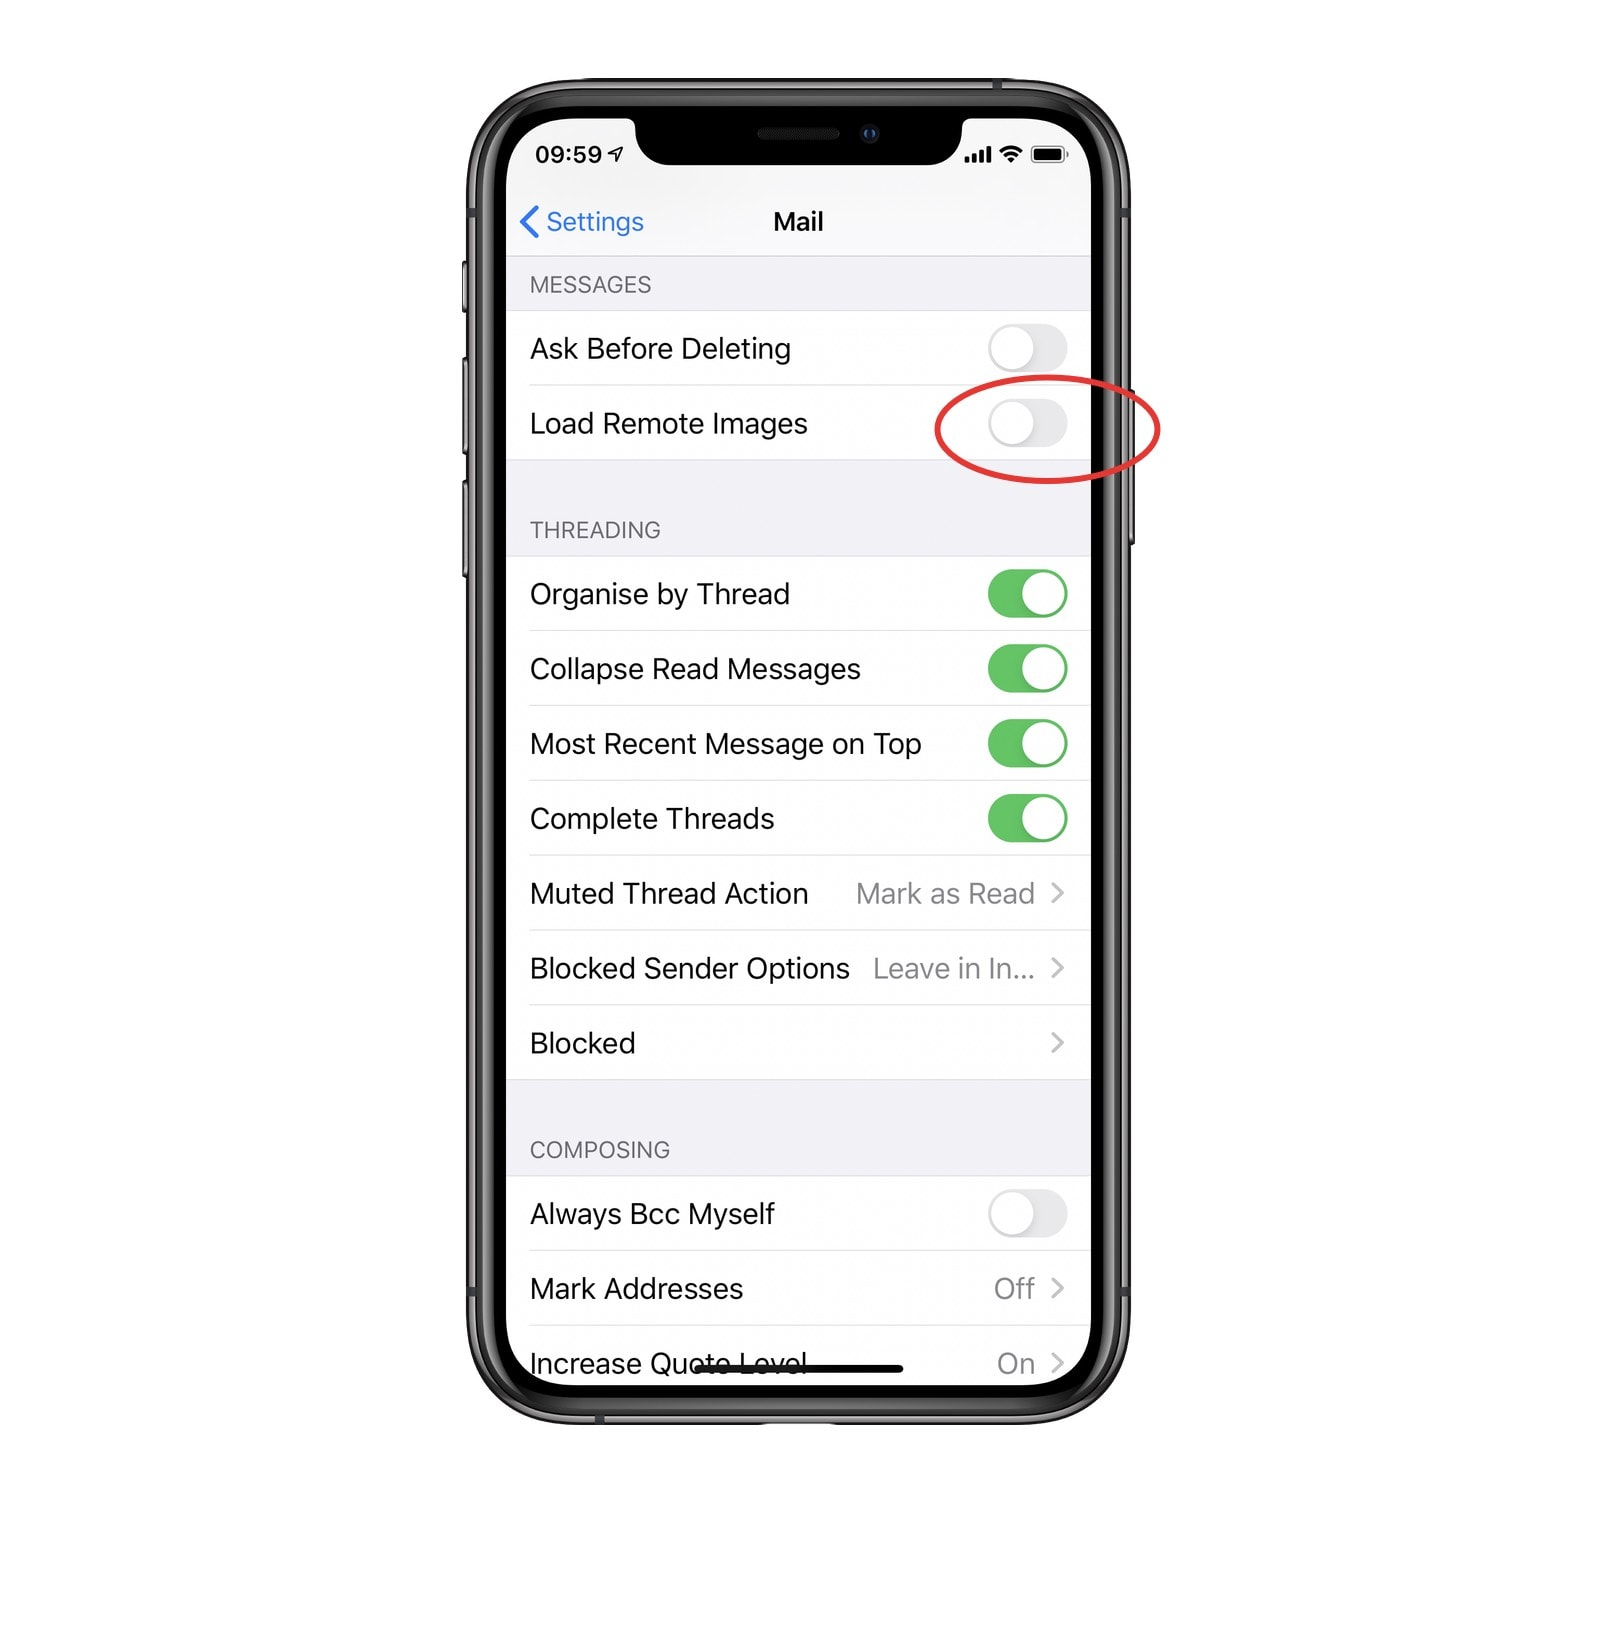 Here's how to block remote images, and thus disable read receipts, in Mail on iOS.